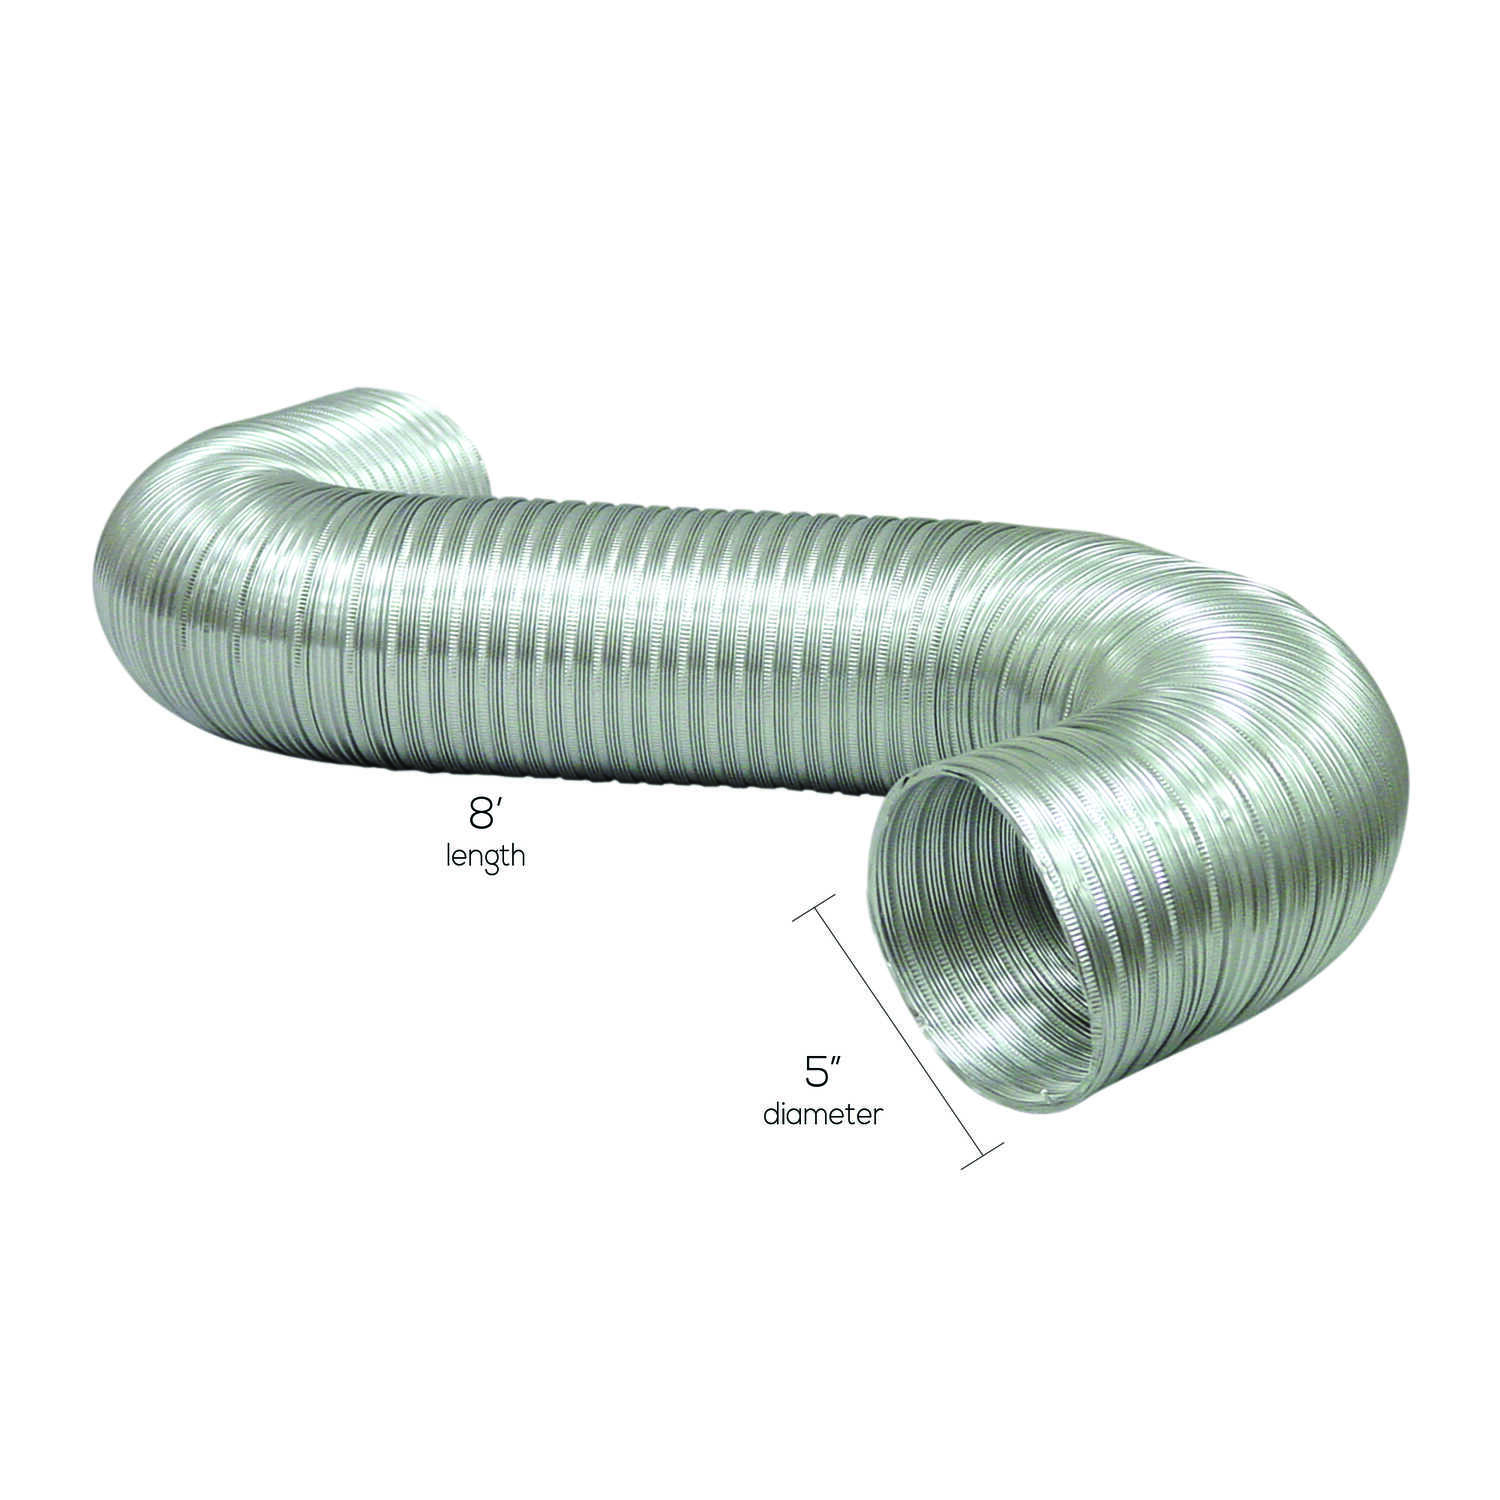 Deflect-O  Jordan  19 in. L x 7 in. Dia. Black/Silver  Aluminum  Dryer and Vent Hose